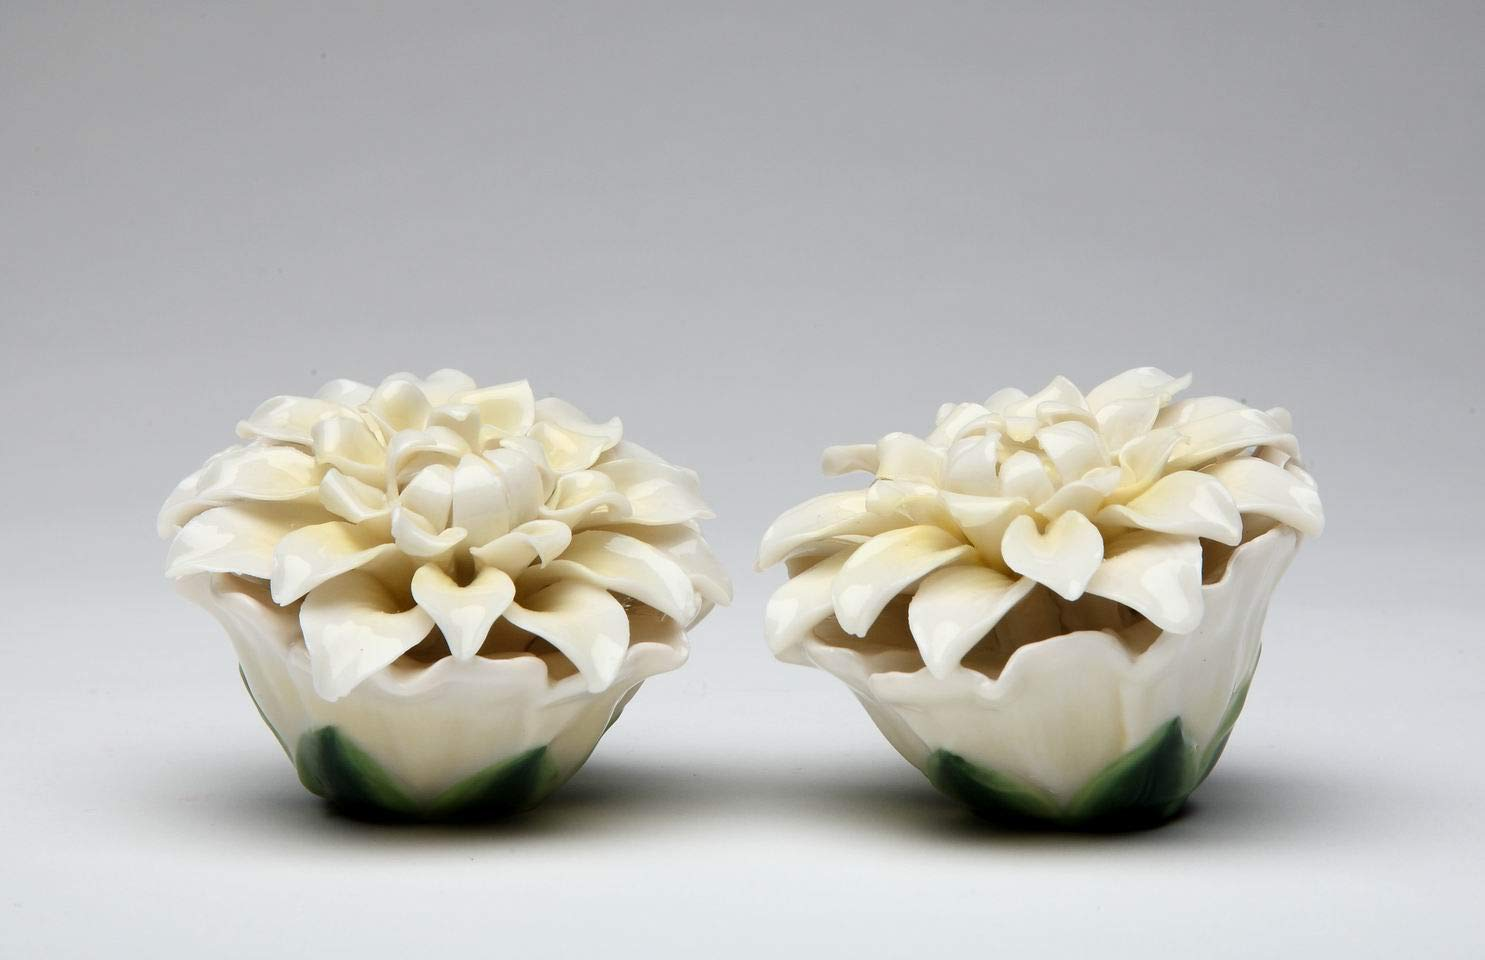 2.5 Inch Yellow and Purple Pansy Flowers Salt and Pepper Shaker Set StealStreet SS-CG-20734